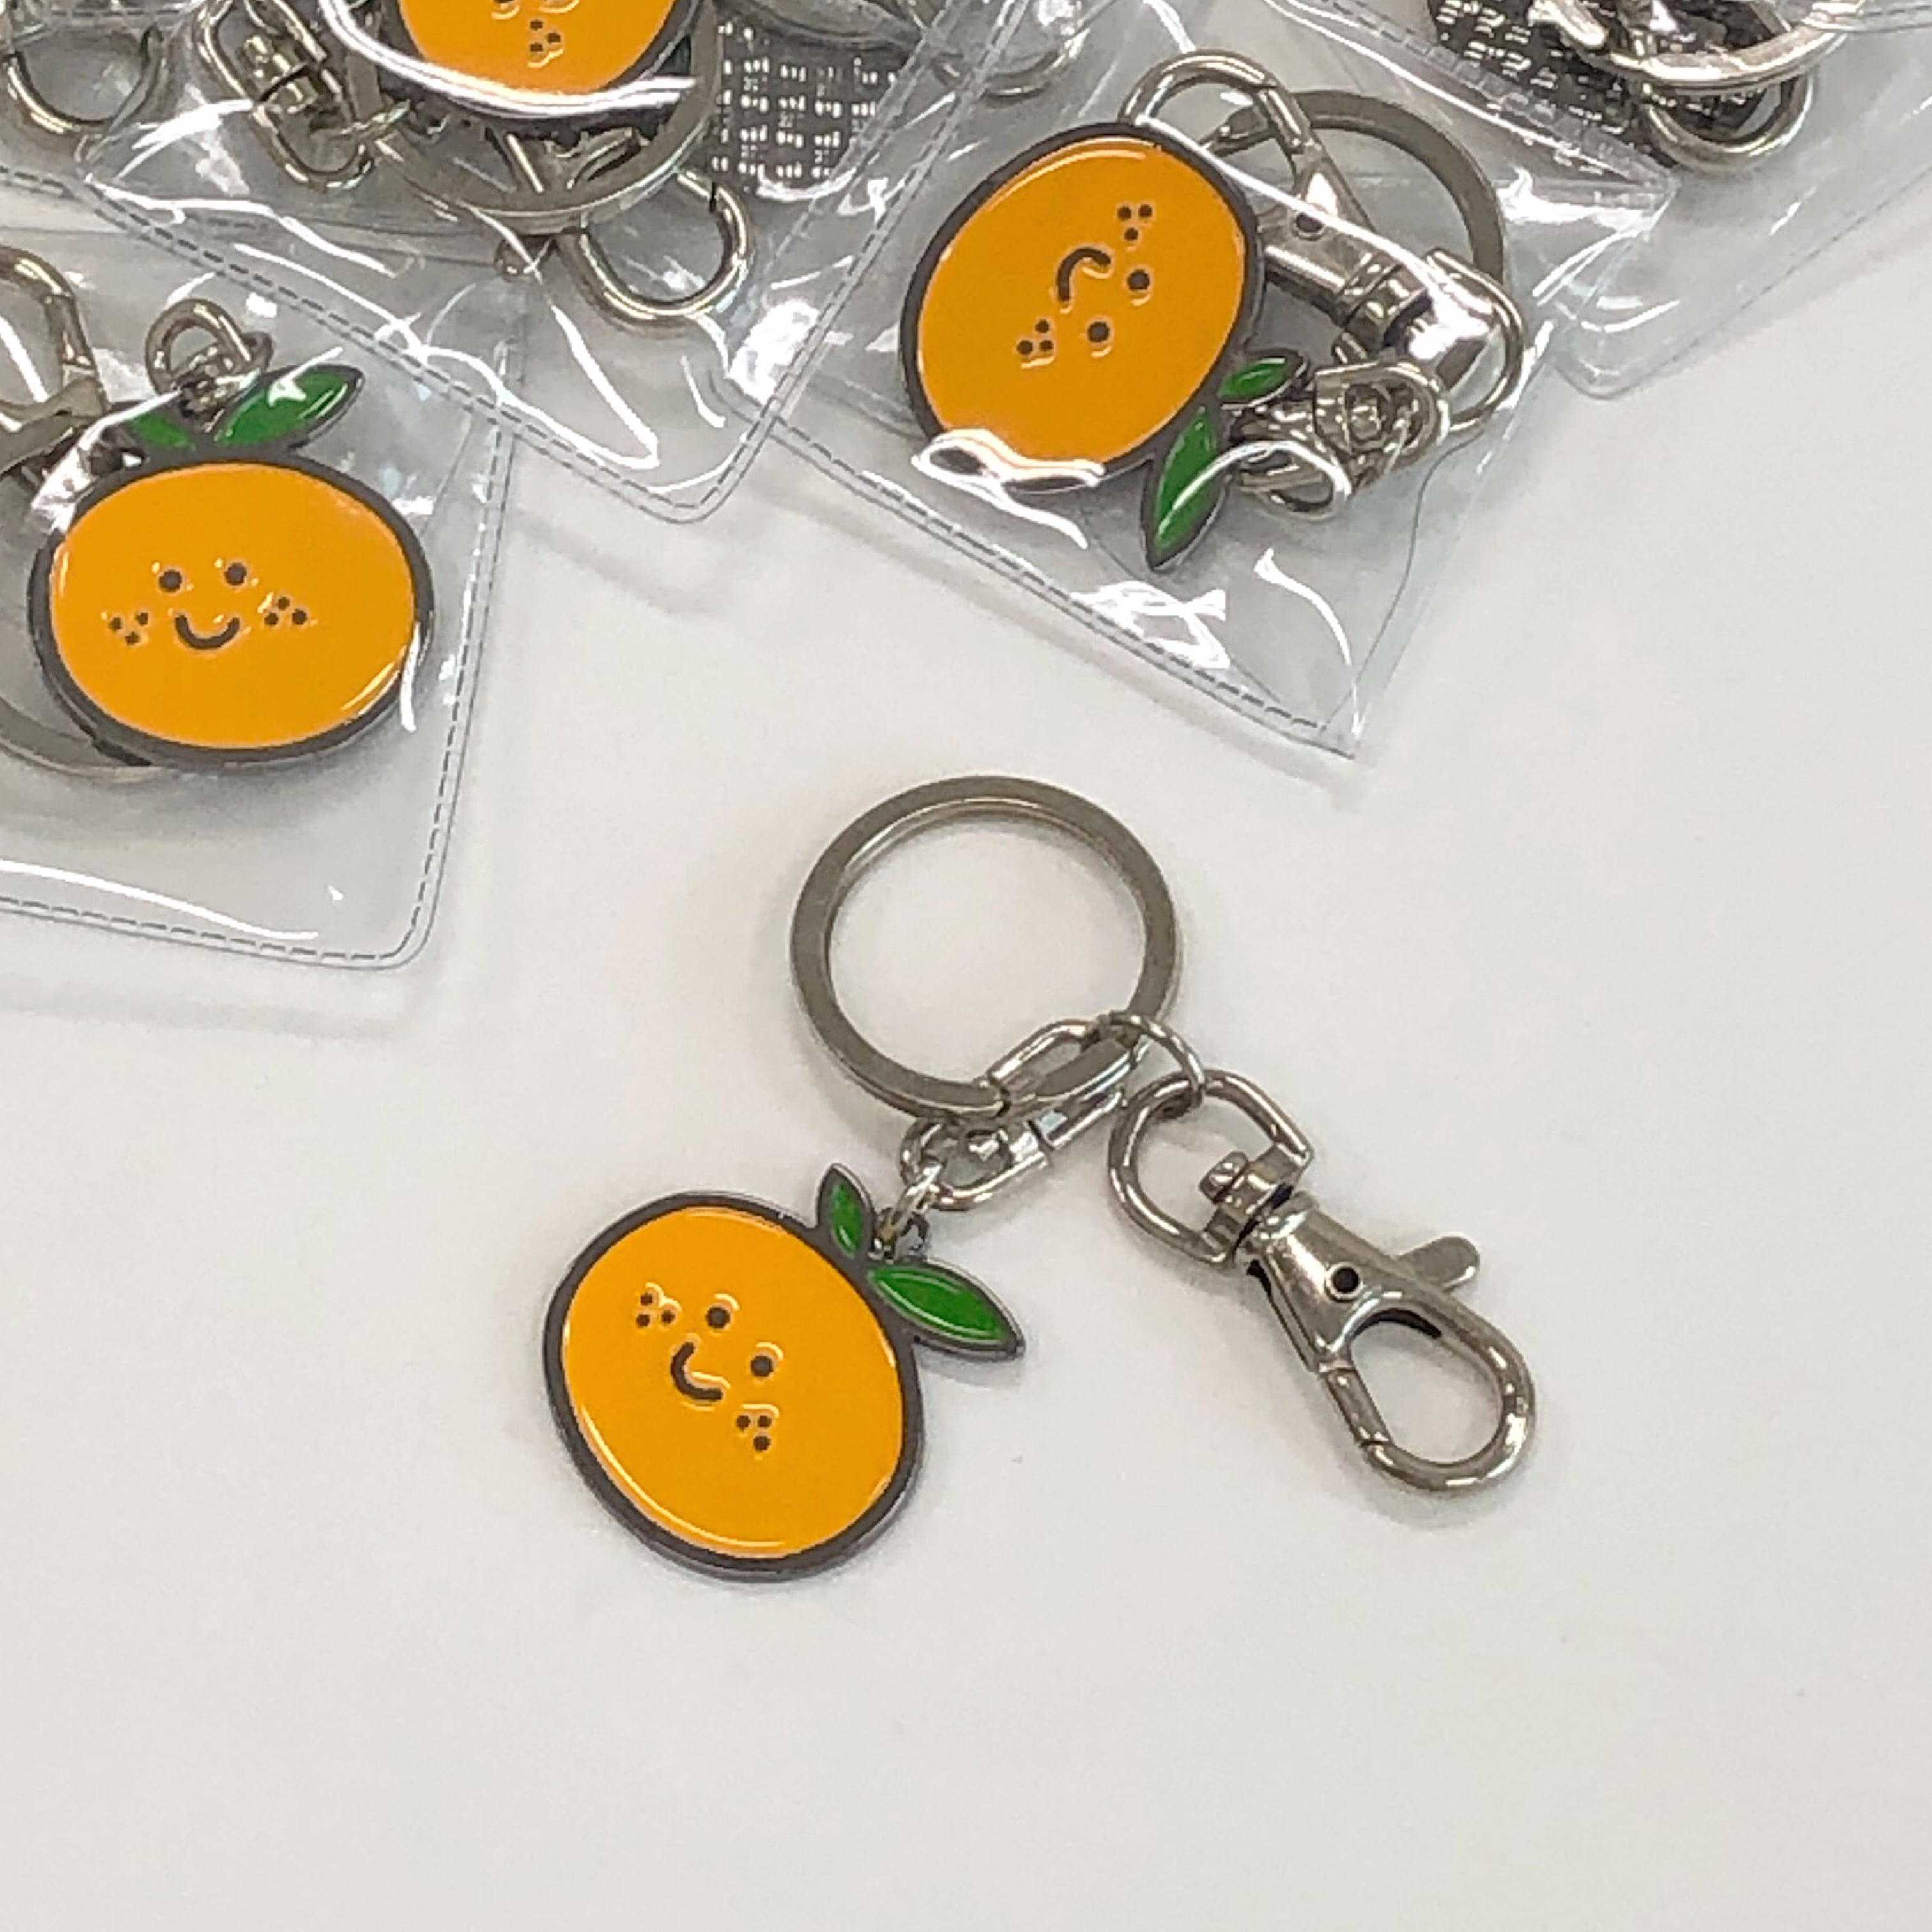 Tangerine key ring (금속)